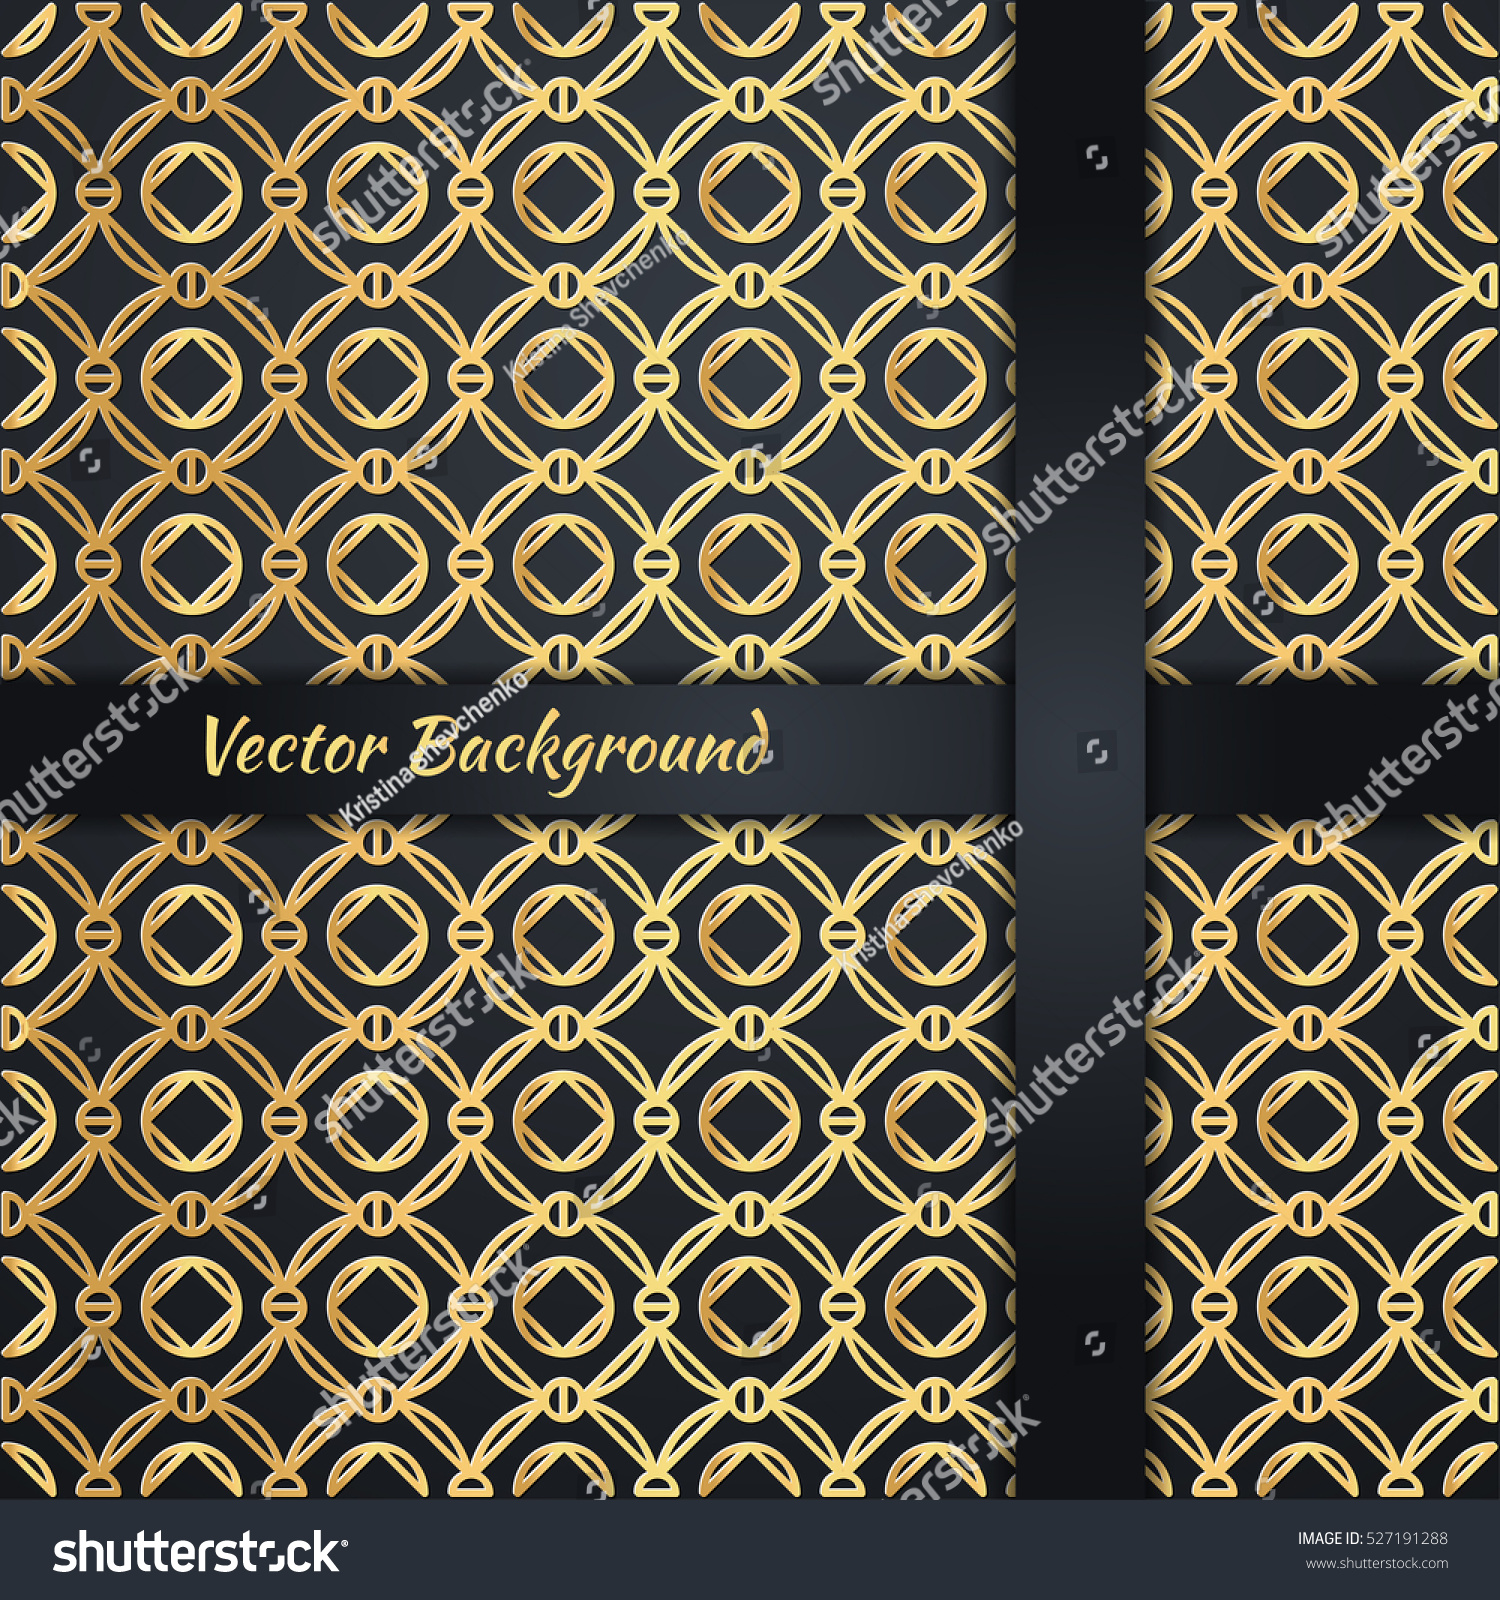 Abstract Vector Background Luxury Style Gold Stock Vector